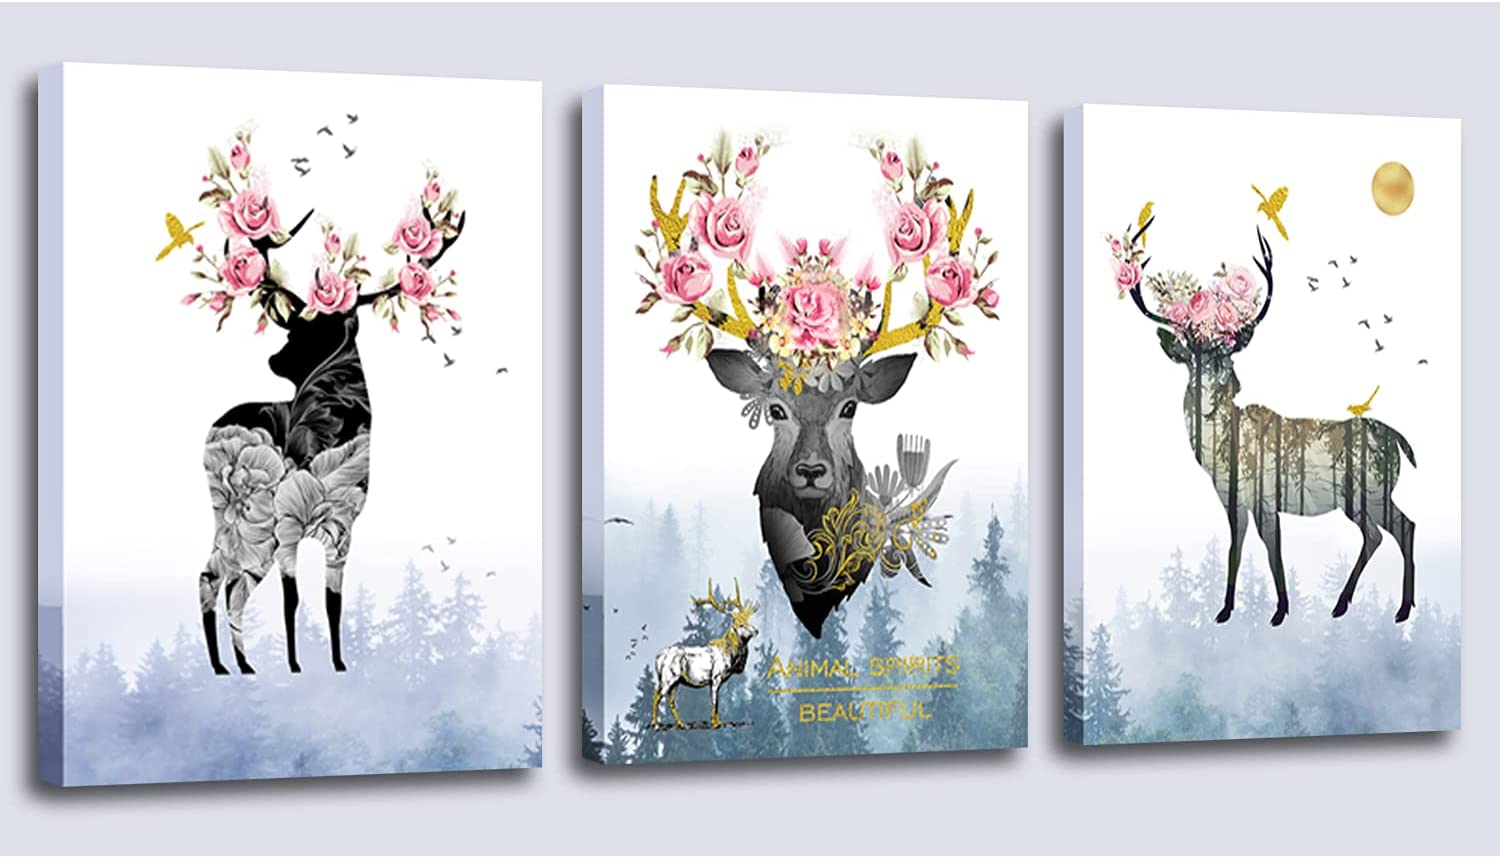 Aijuyuan.Li 3 Pieces of Animal Deer Canvas Decoration Wall Art, Fog Forest Landscape Decoration Poster Pink Flower Mural Bedroom Home Hanging Painting12x16 Inch x3 Panel